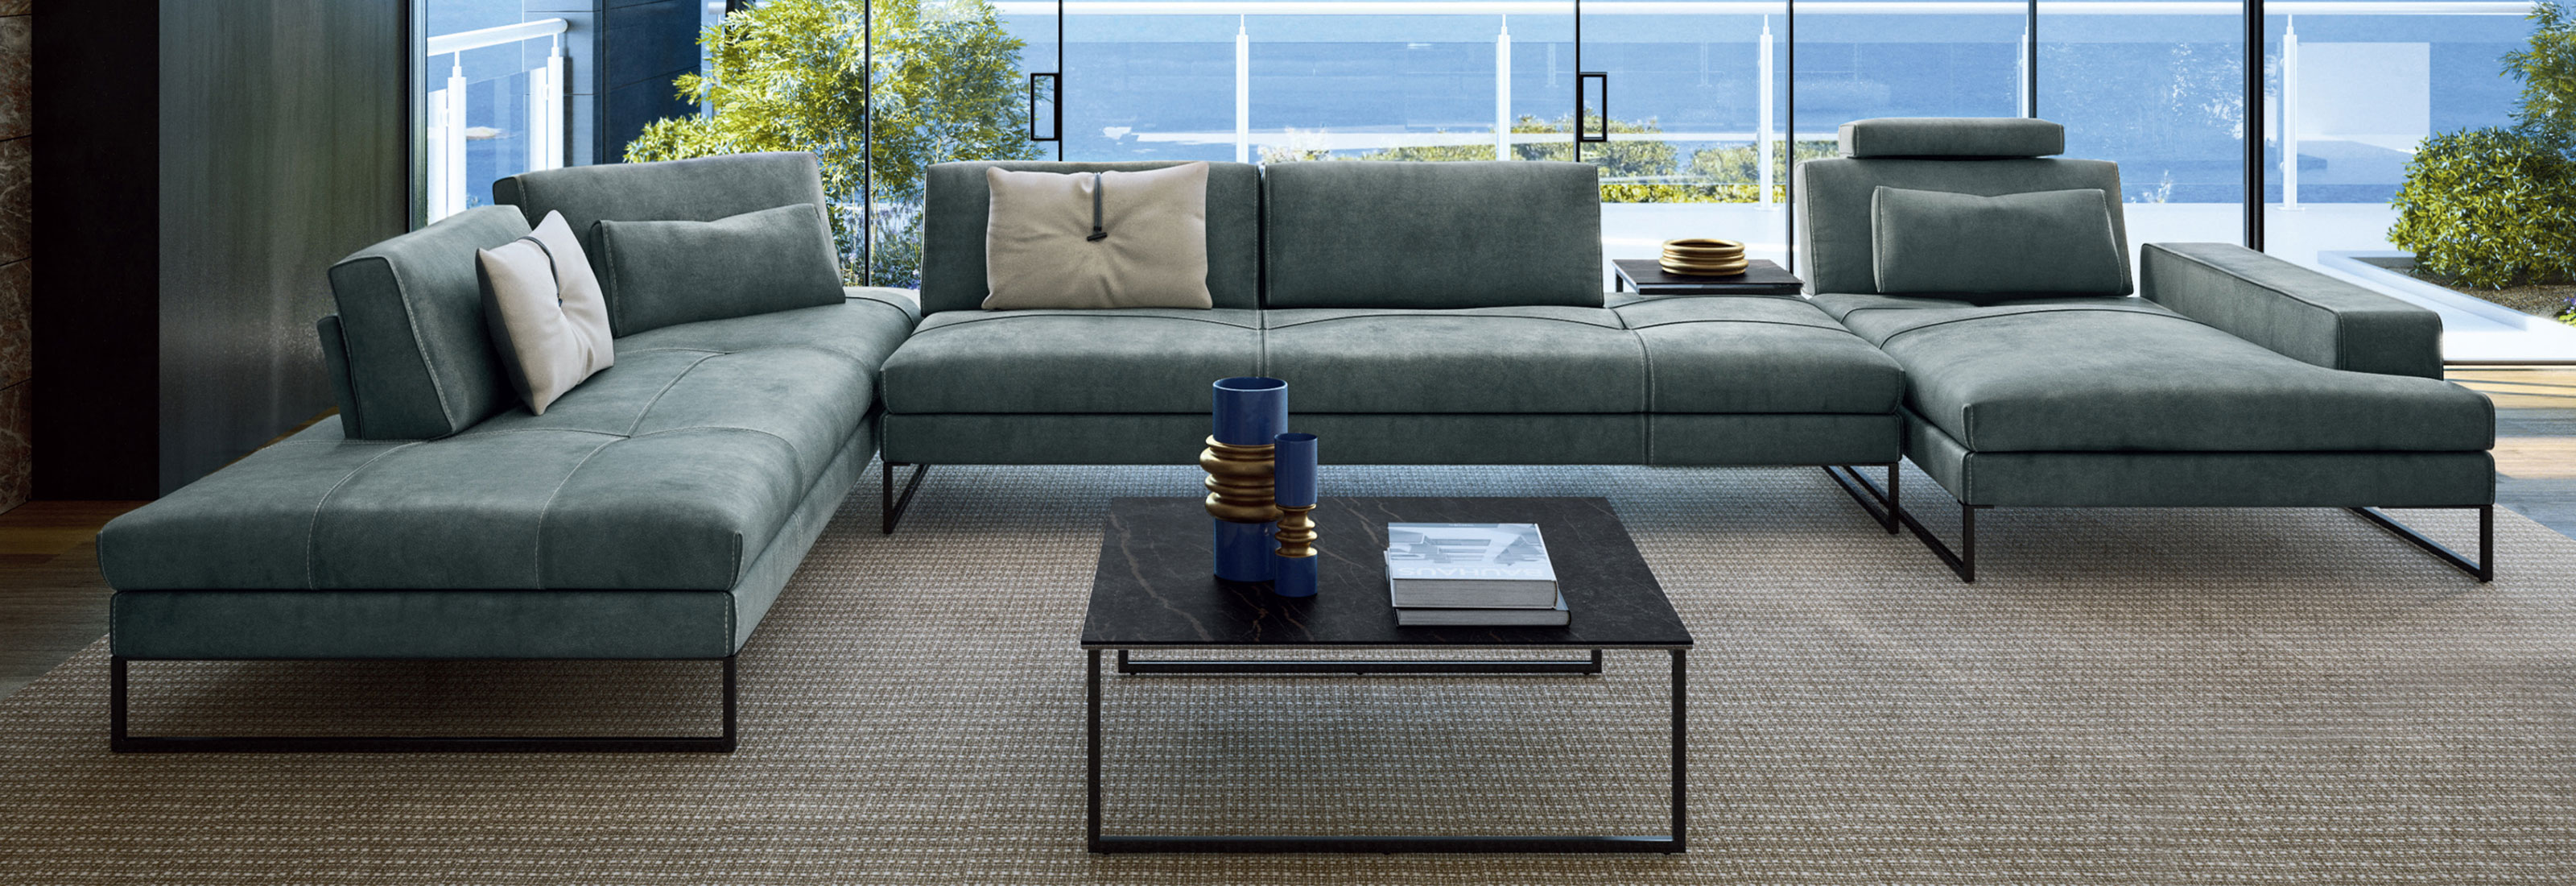 Alpha Sofa Group Modern Furniture Contemporary Furniture Cantoni